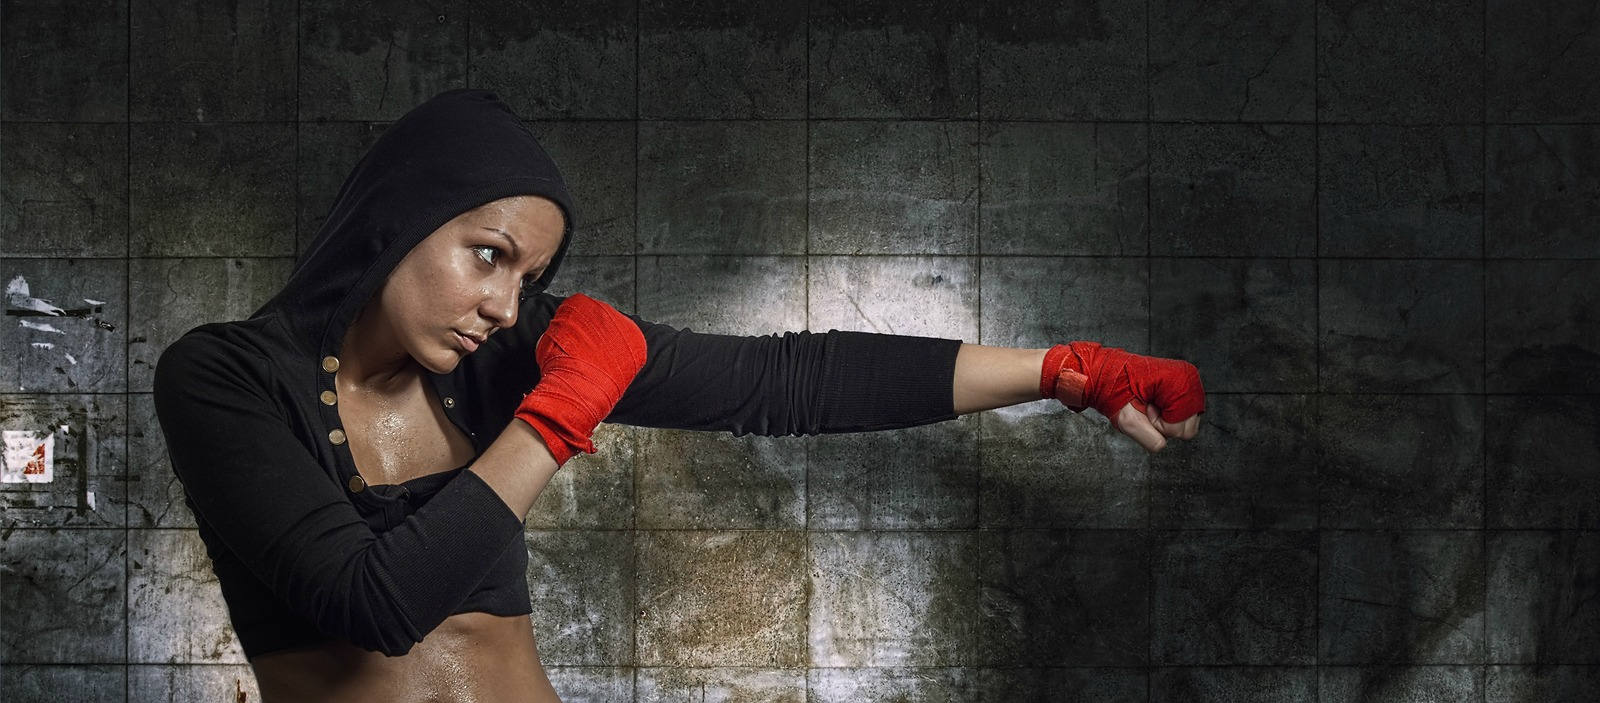 Women, don't be put off boxing thinking it's too aggressive. It offers loads of great mental and physical benefits!